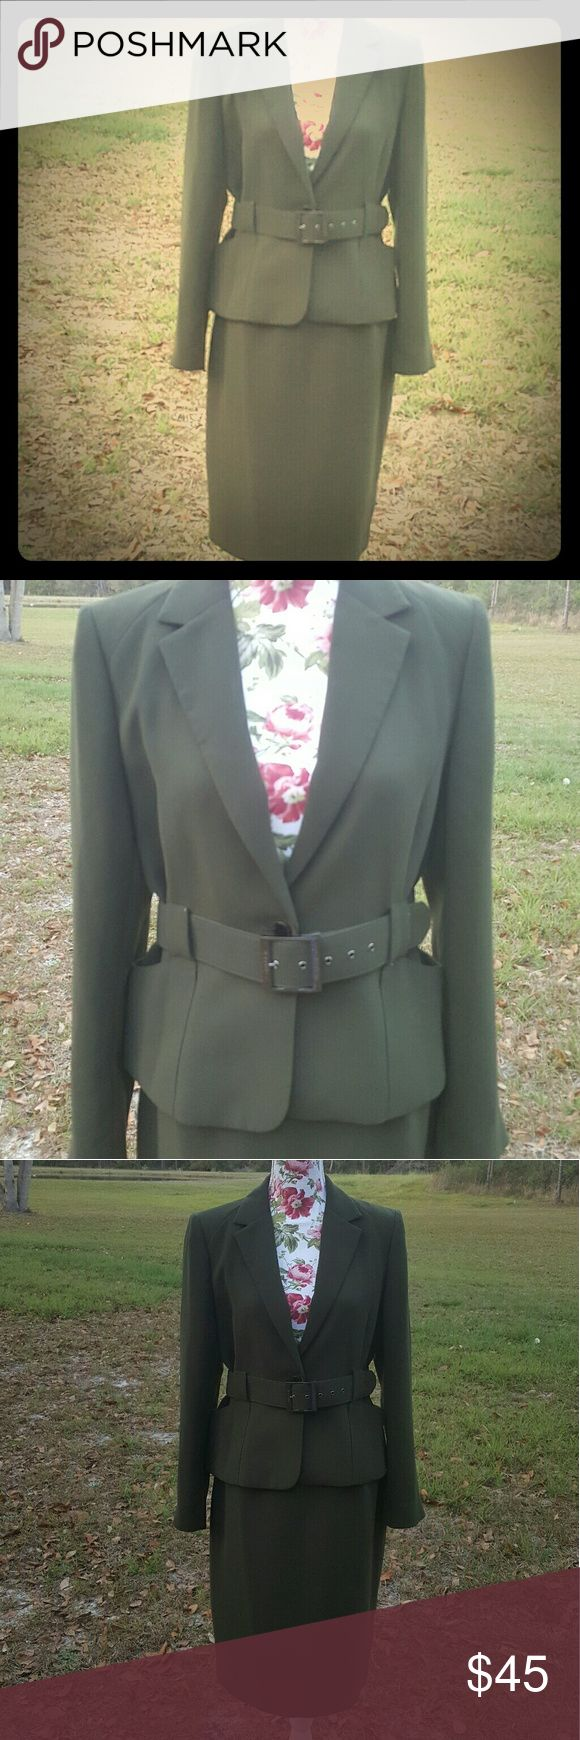 Like new Calvin Klein suit size 10 Sophisticated  and gorgeous 2 piece suit by Calvin Klein in hunter green color in size 10. My mom wore it once to a wedding.  Like new condition. Calvin Klein Dresses